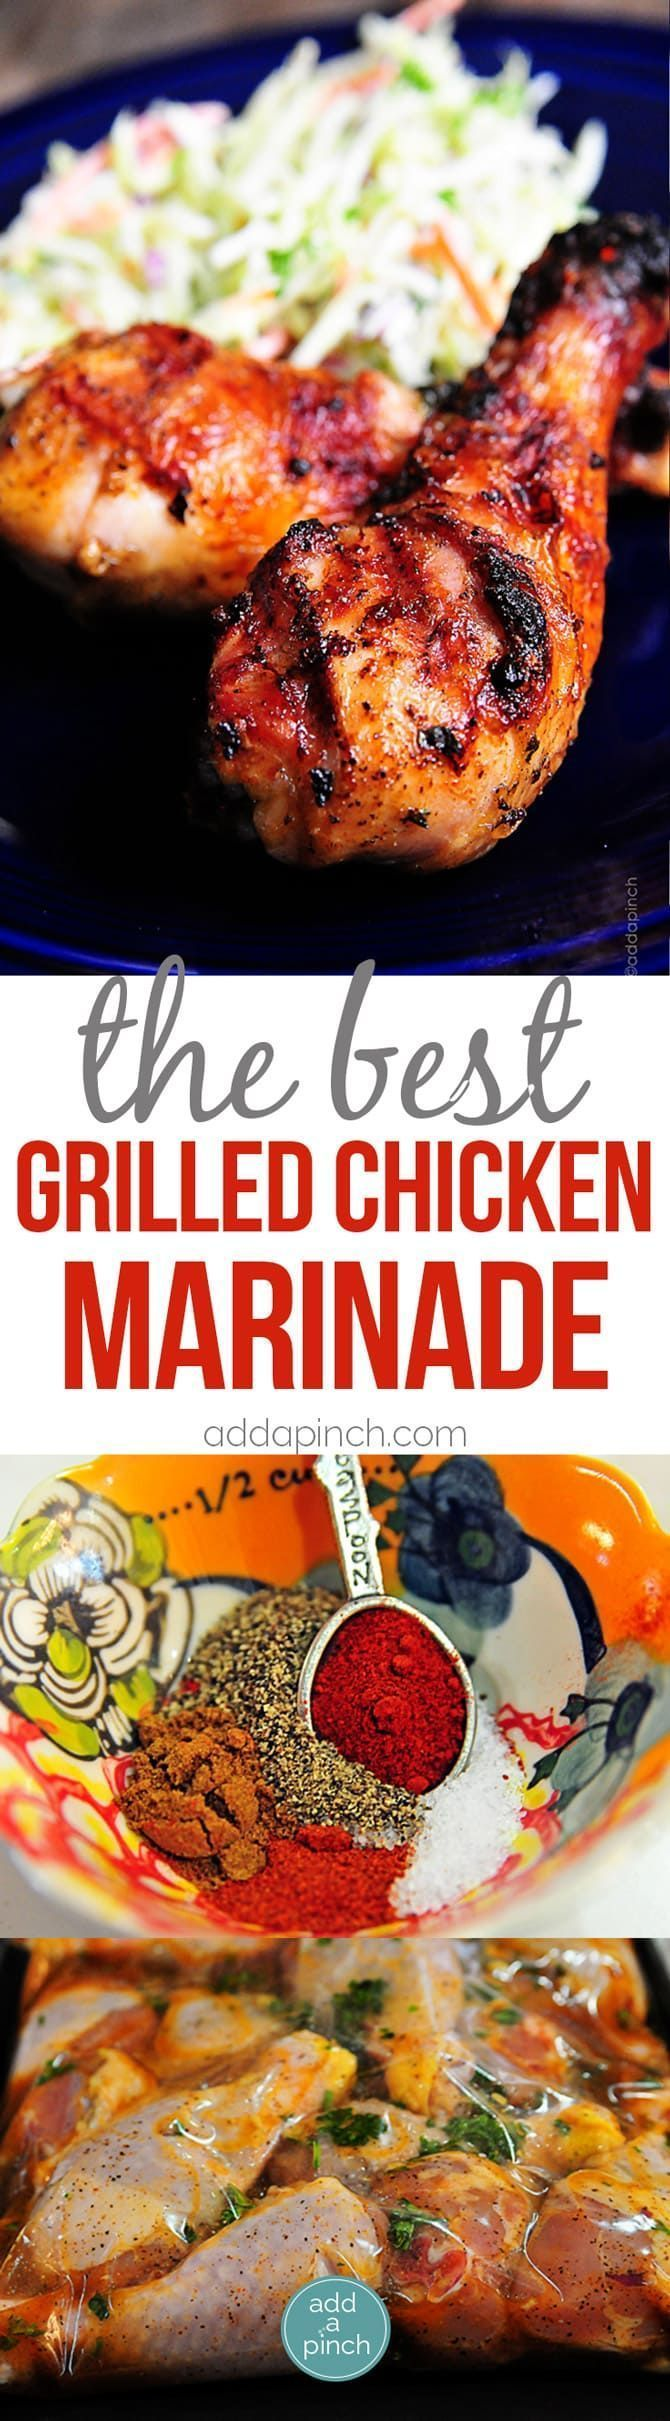 Best Grilled Chicken Marinade Recipe - Grilled Chicken recipes are always a crowd-pleaser. This easy grilled chicken marinade recipe will become a favorite! // addapinch.com